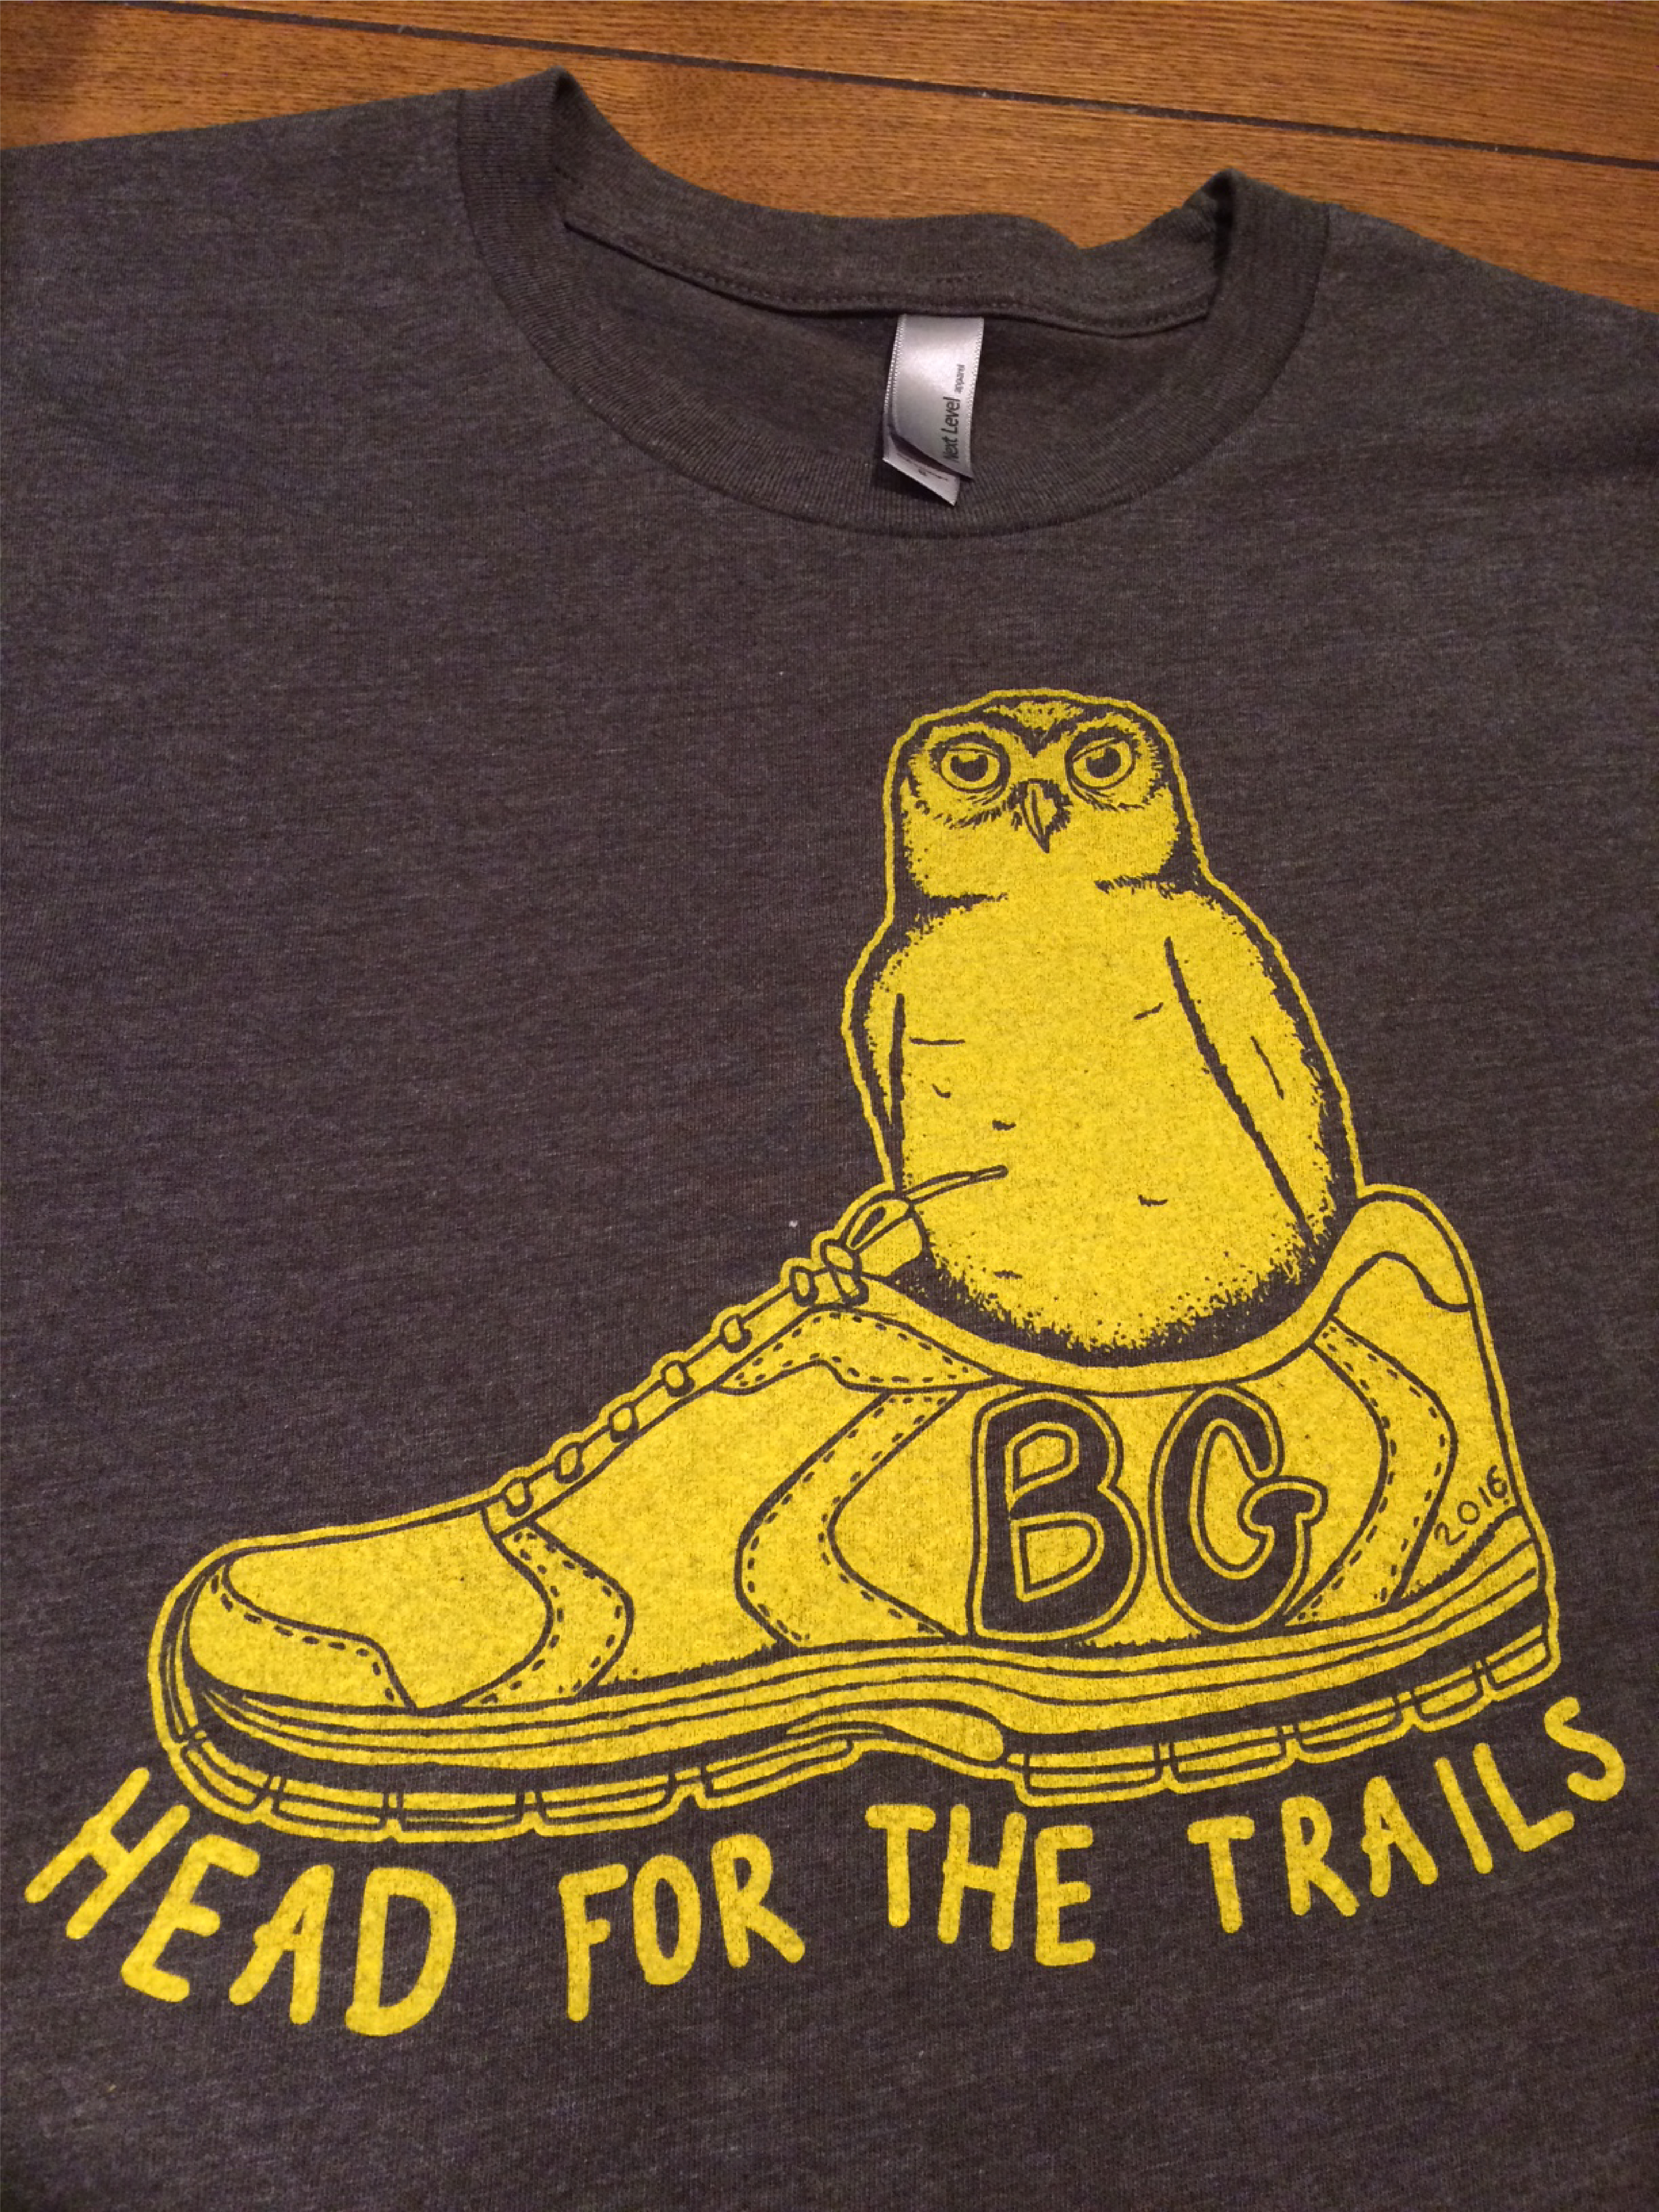 Small Owl inside a running shoe that says Head for the Trails.